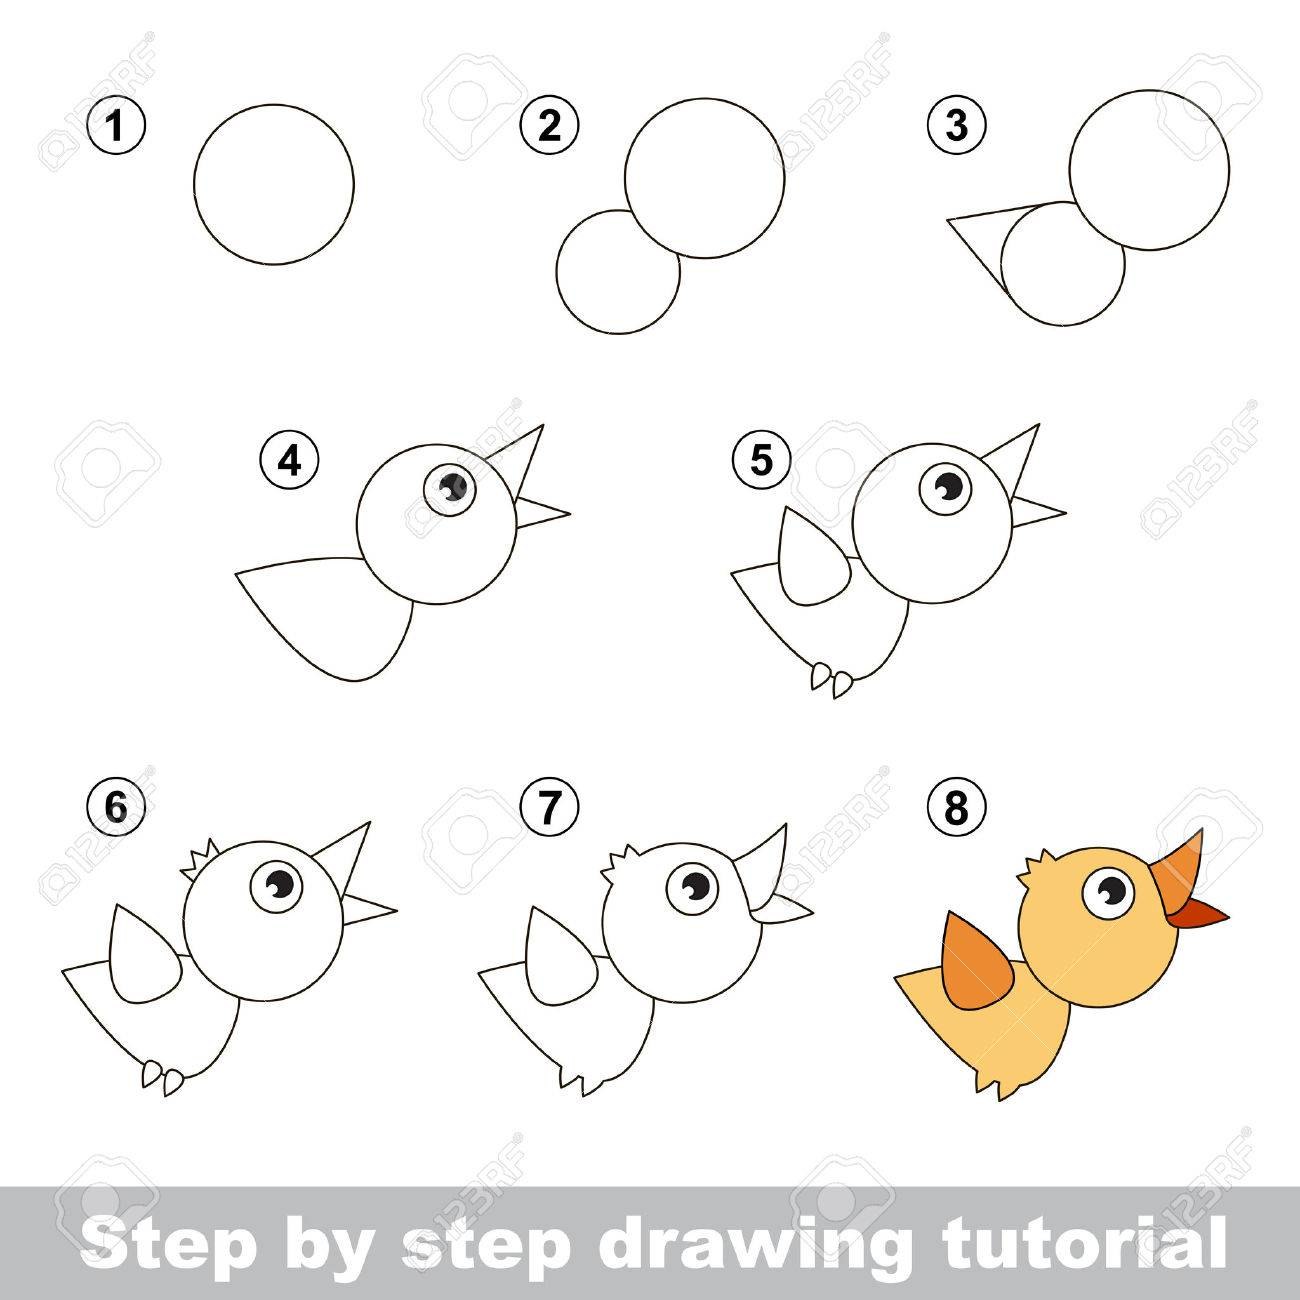 step by step drawing tutorial visual game for kids how to draw a bird - Kids Drawing Pic